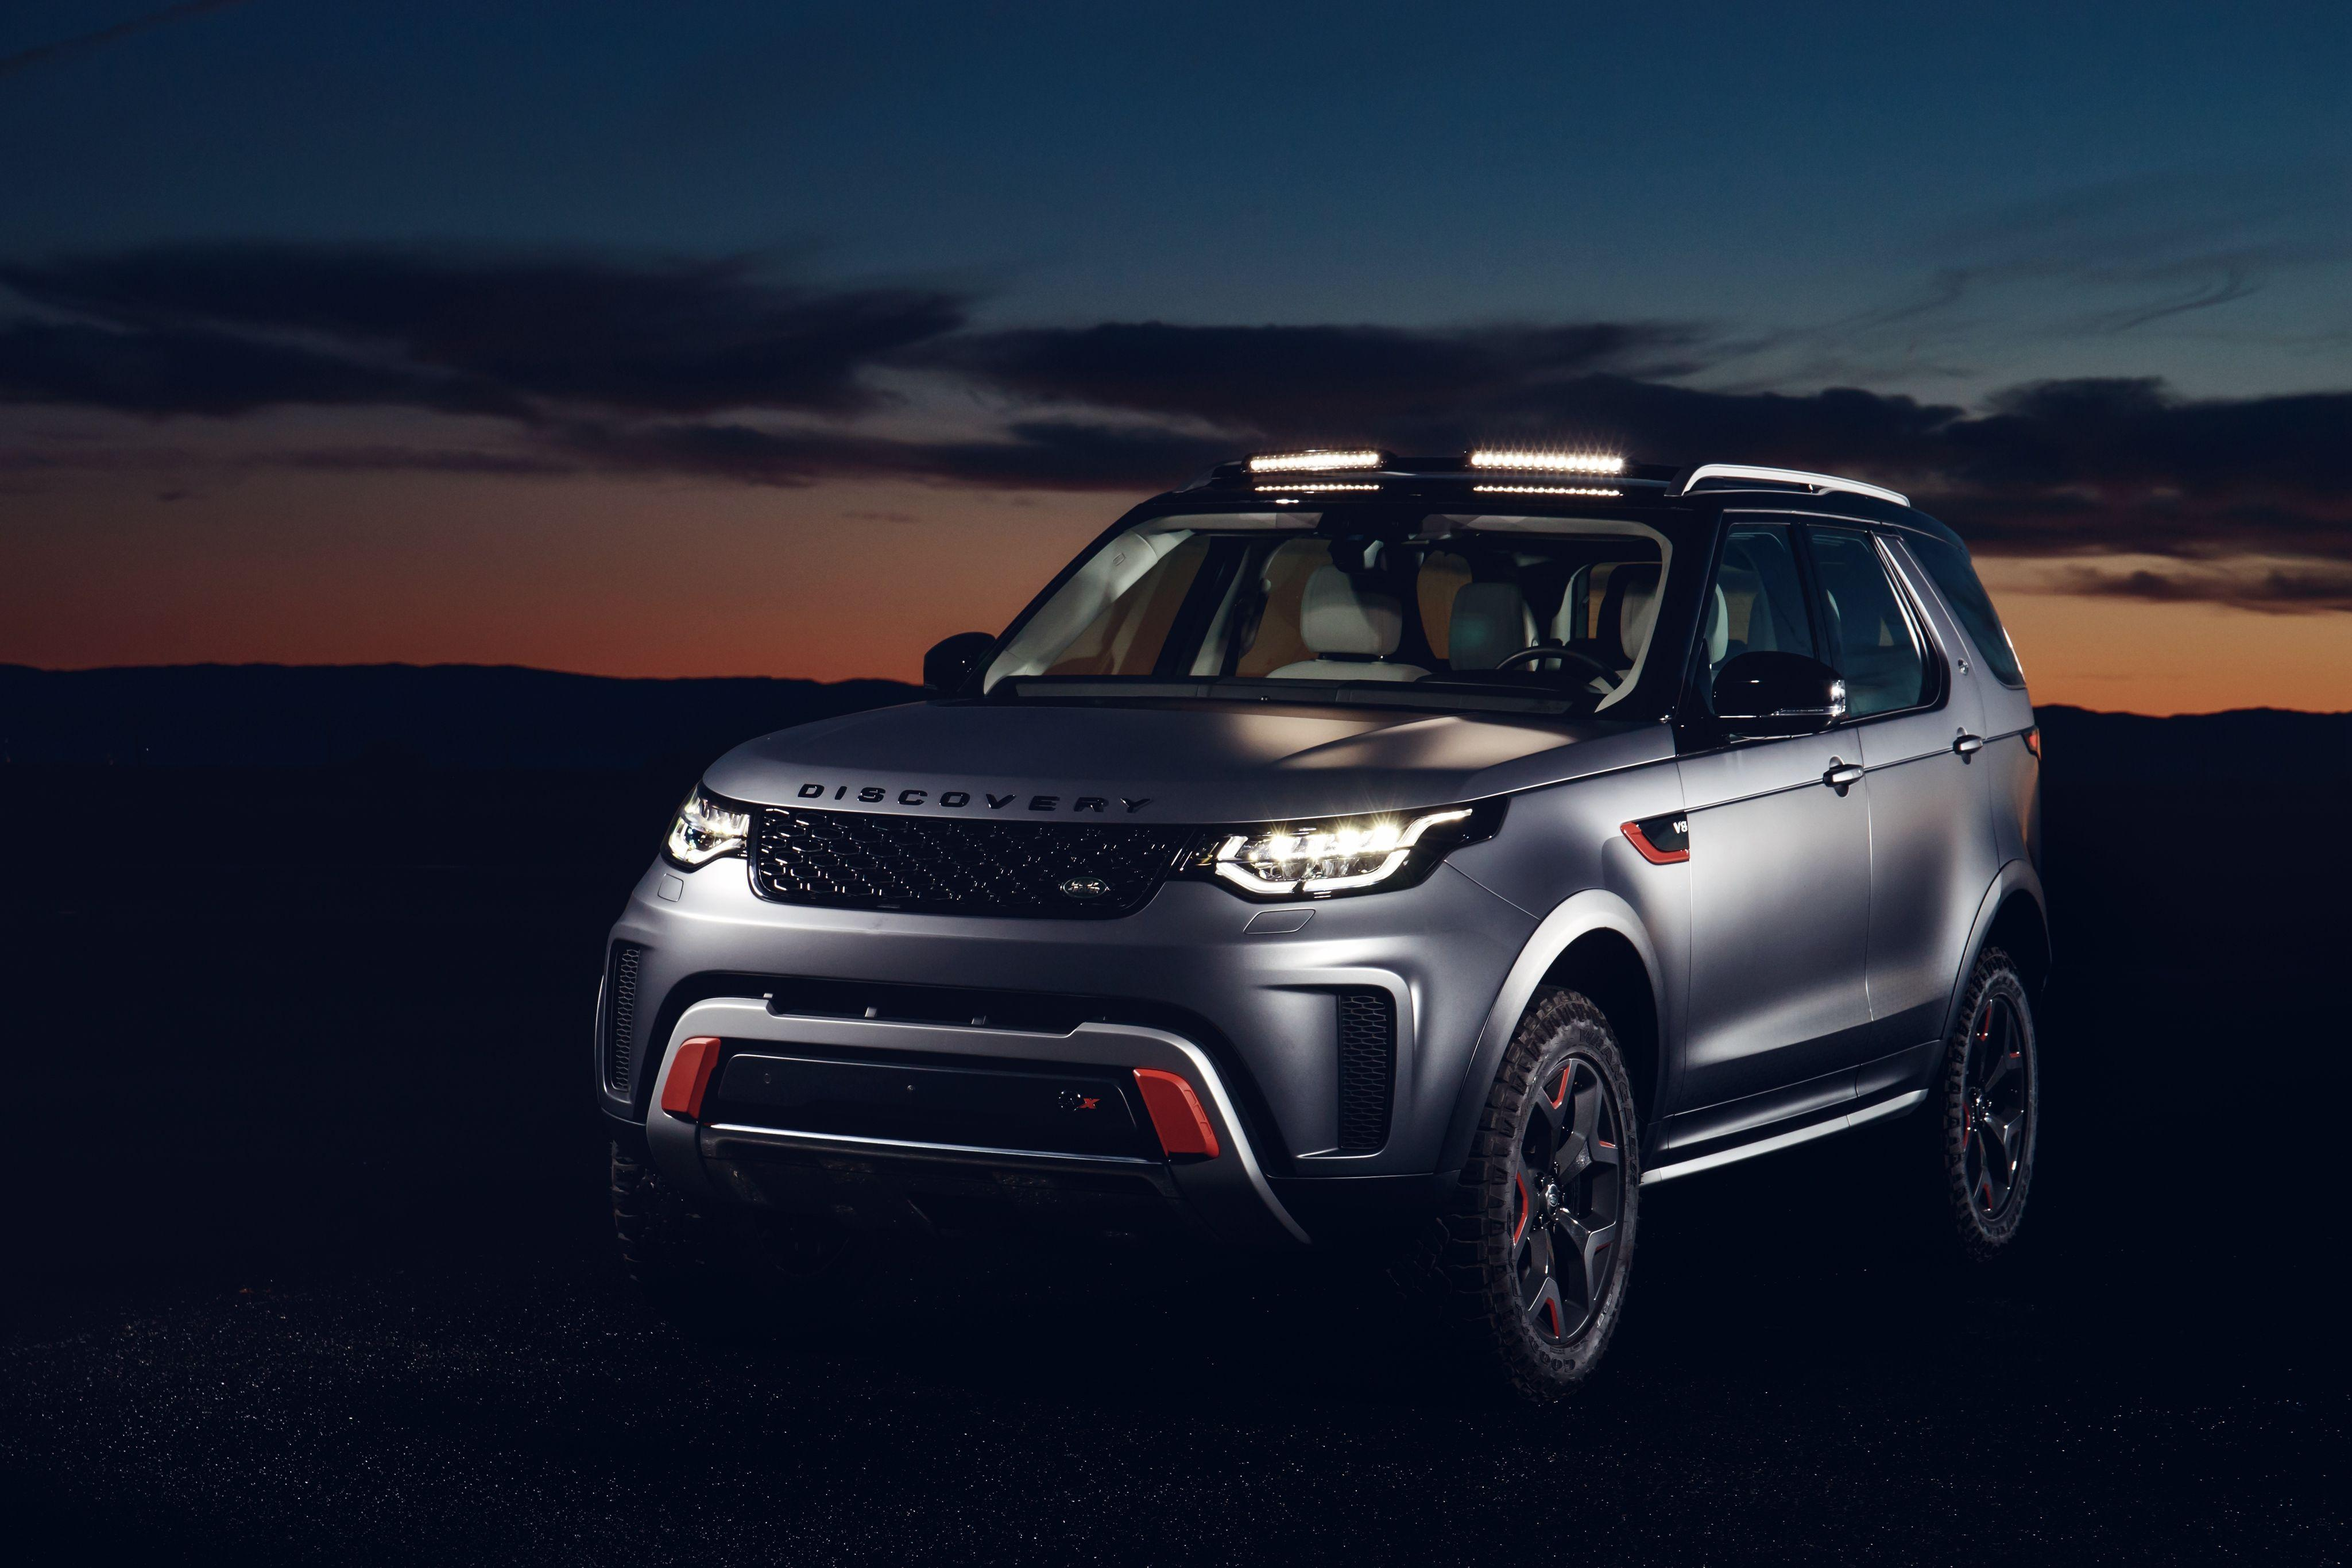 Wallpapers Land Rover Discovery SVX, 2018, 4K, Automotive / Cars,